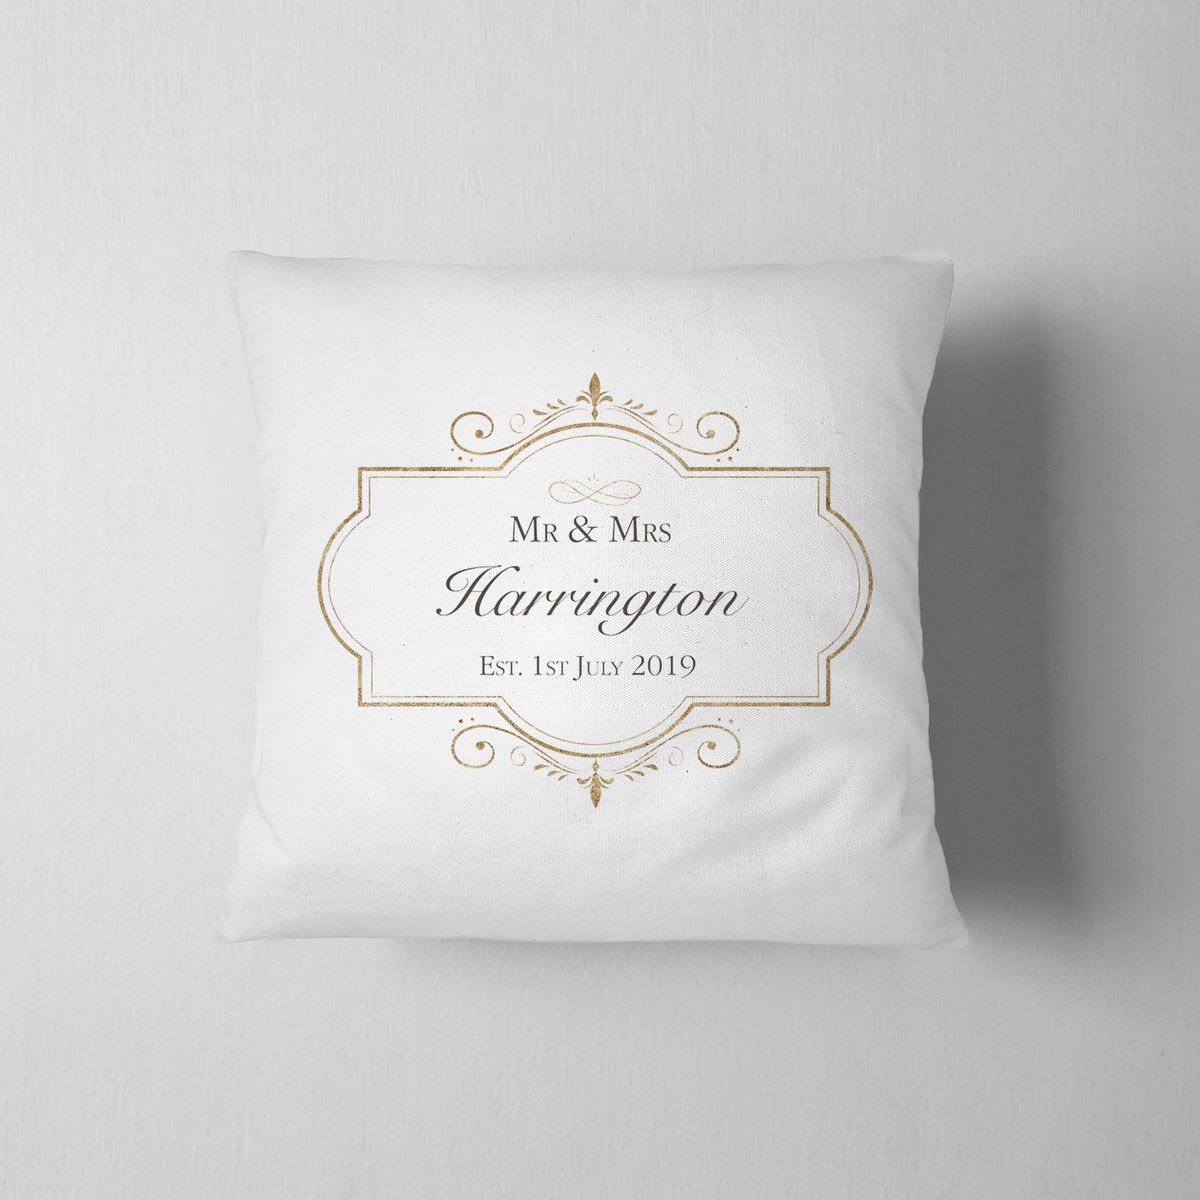 Personalised Wedding Cushion - product images  of